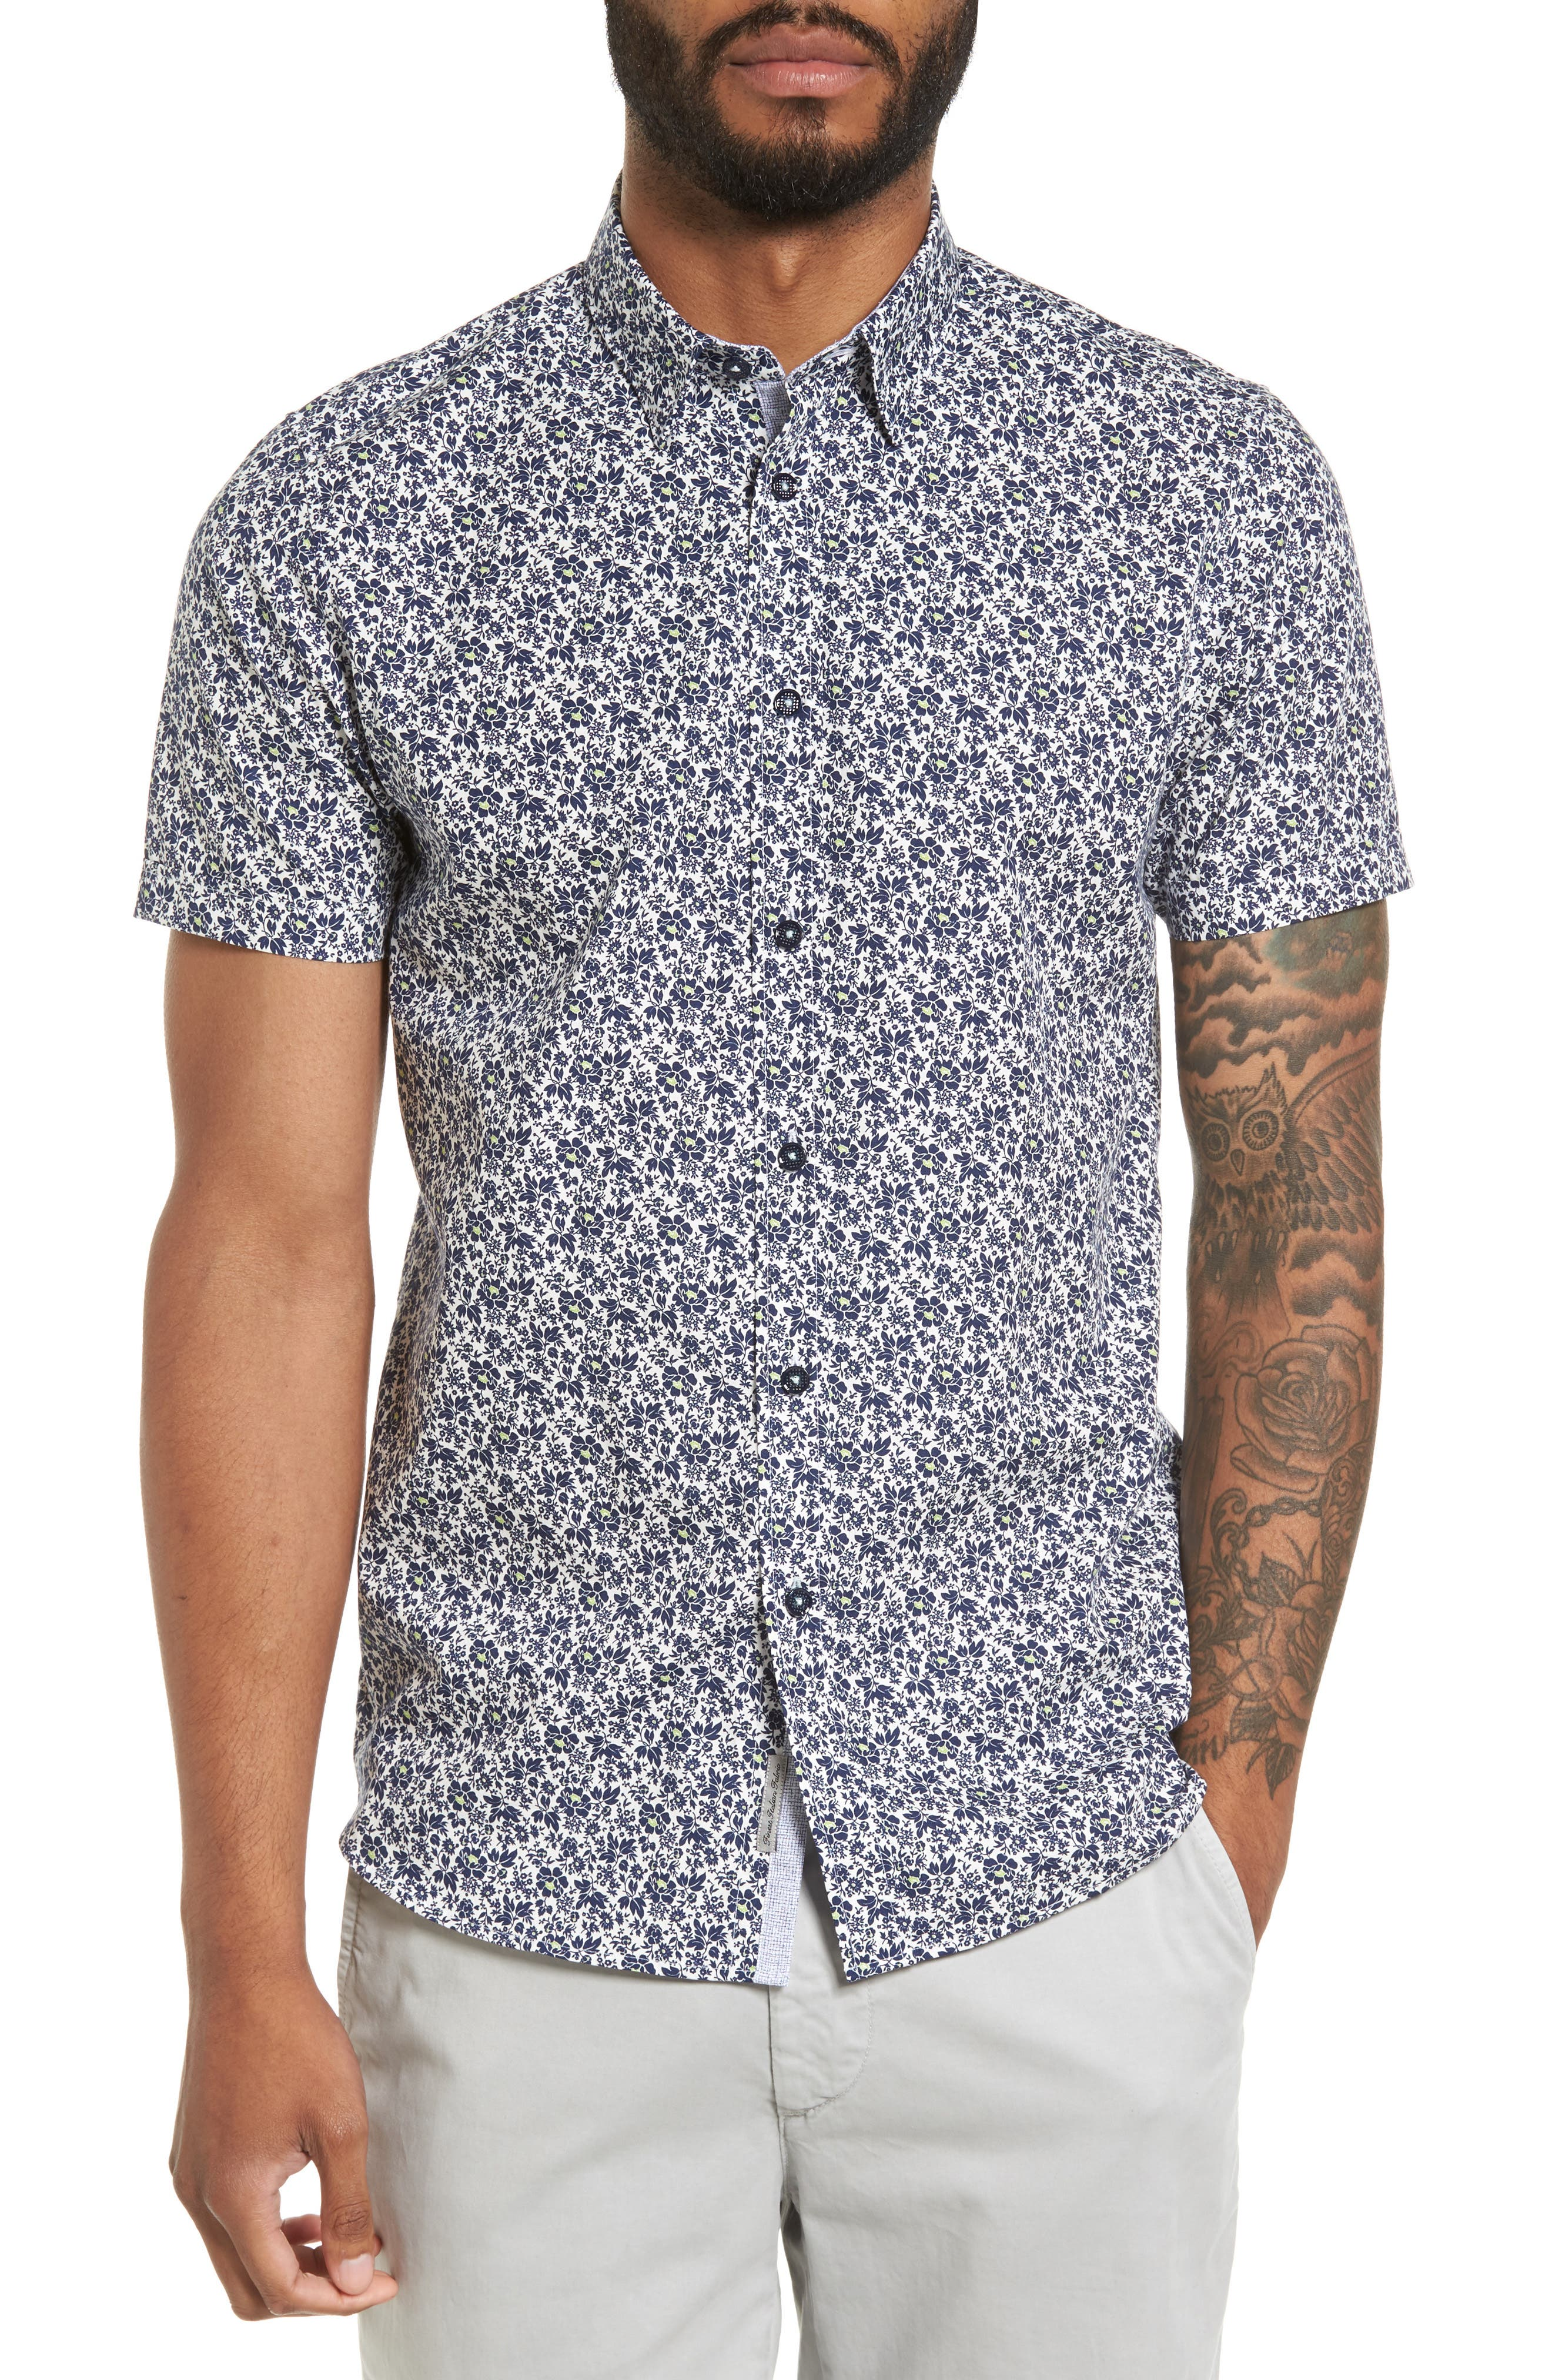 Alygar Slim Fit Floral Woven Shirt,                             Main thumbnail 1, color,                             Dark Blue